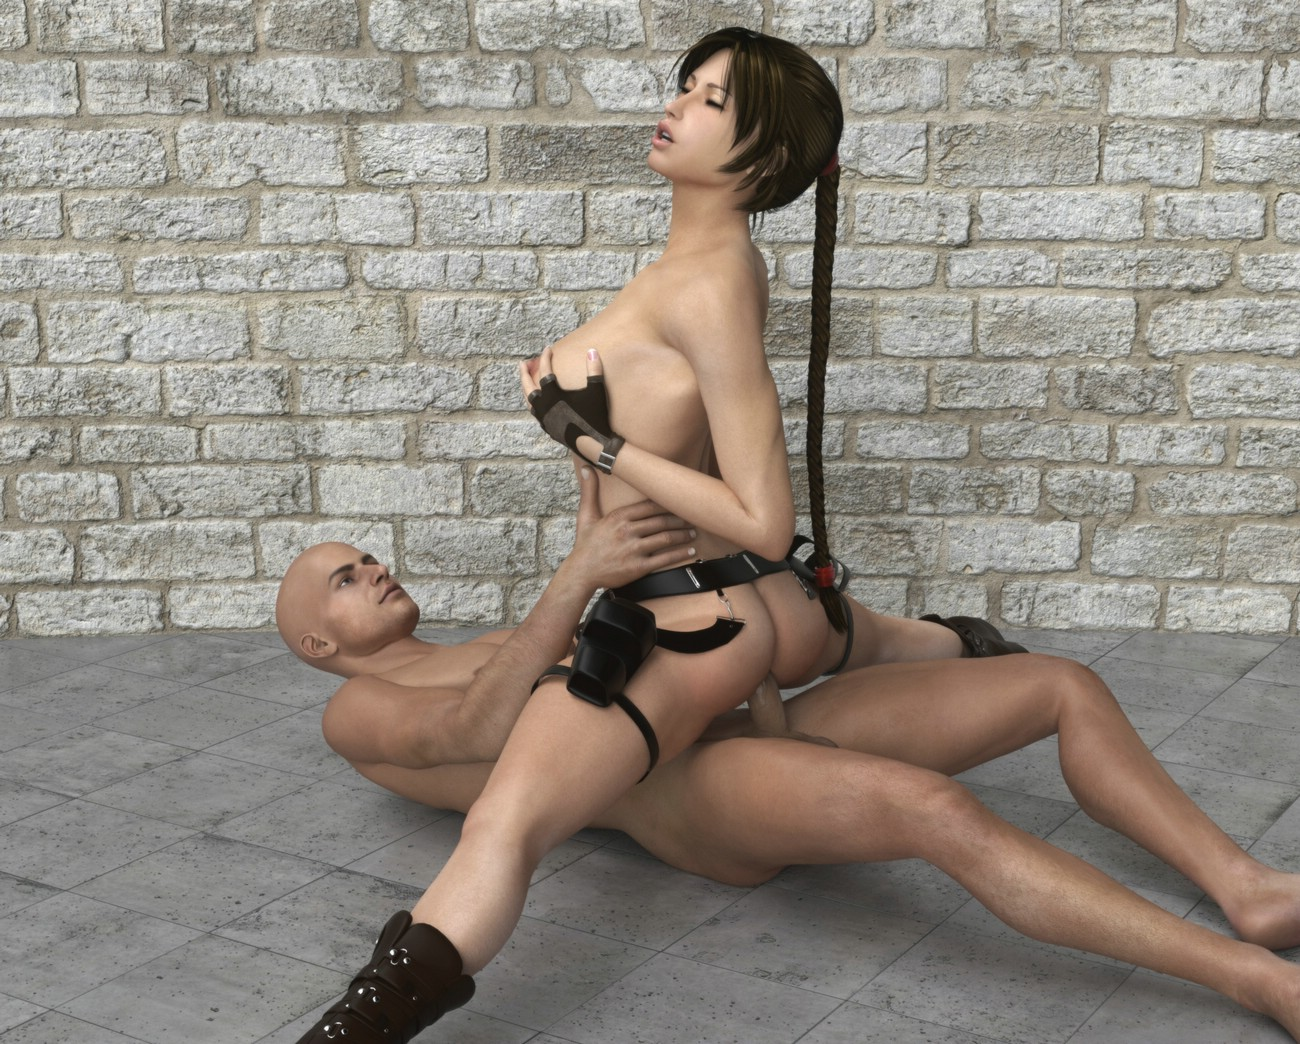 Lara croft hentai 3d porno tube cartoon photos